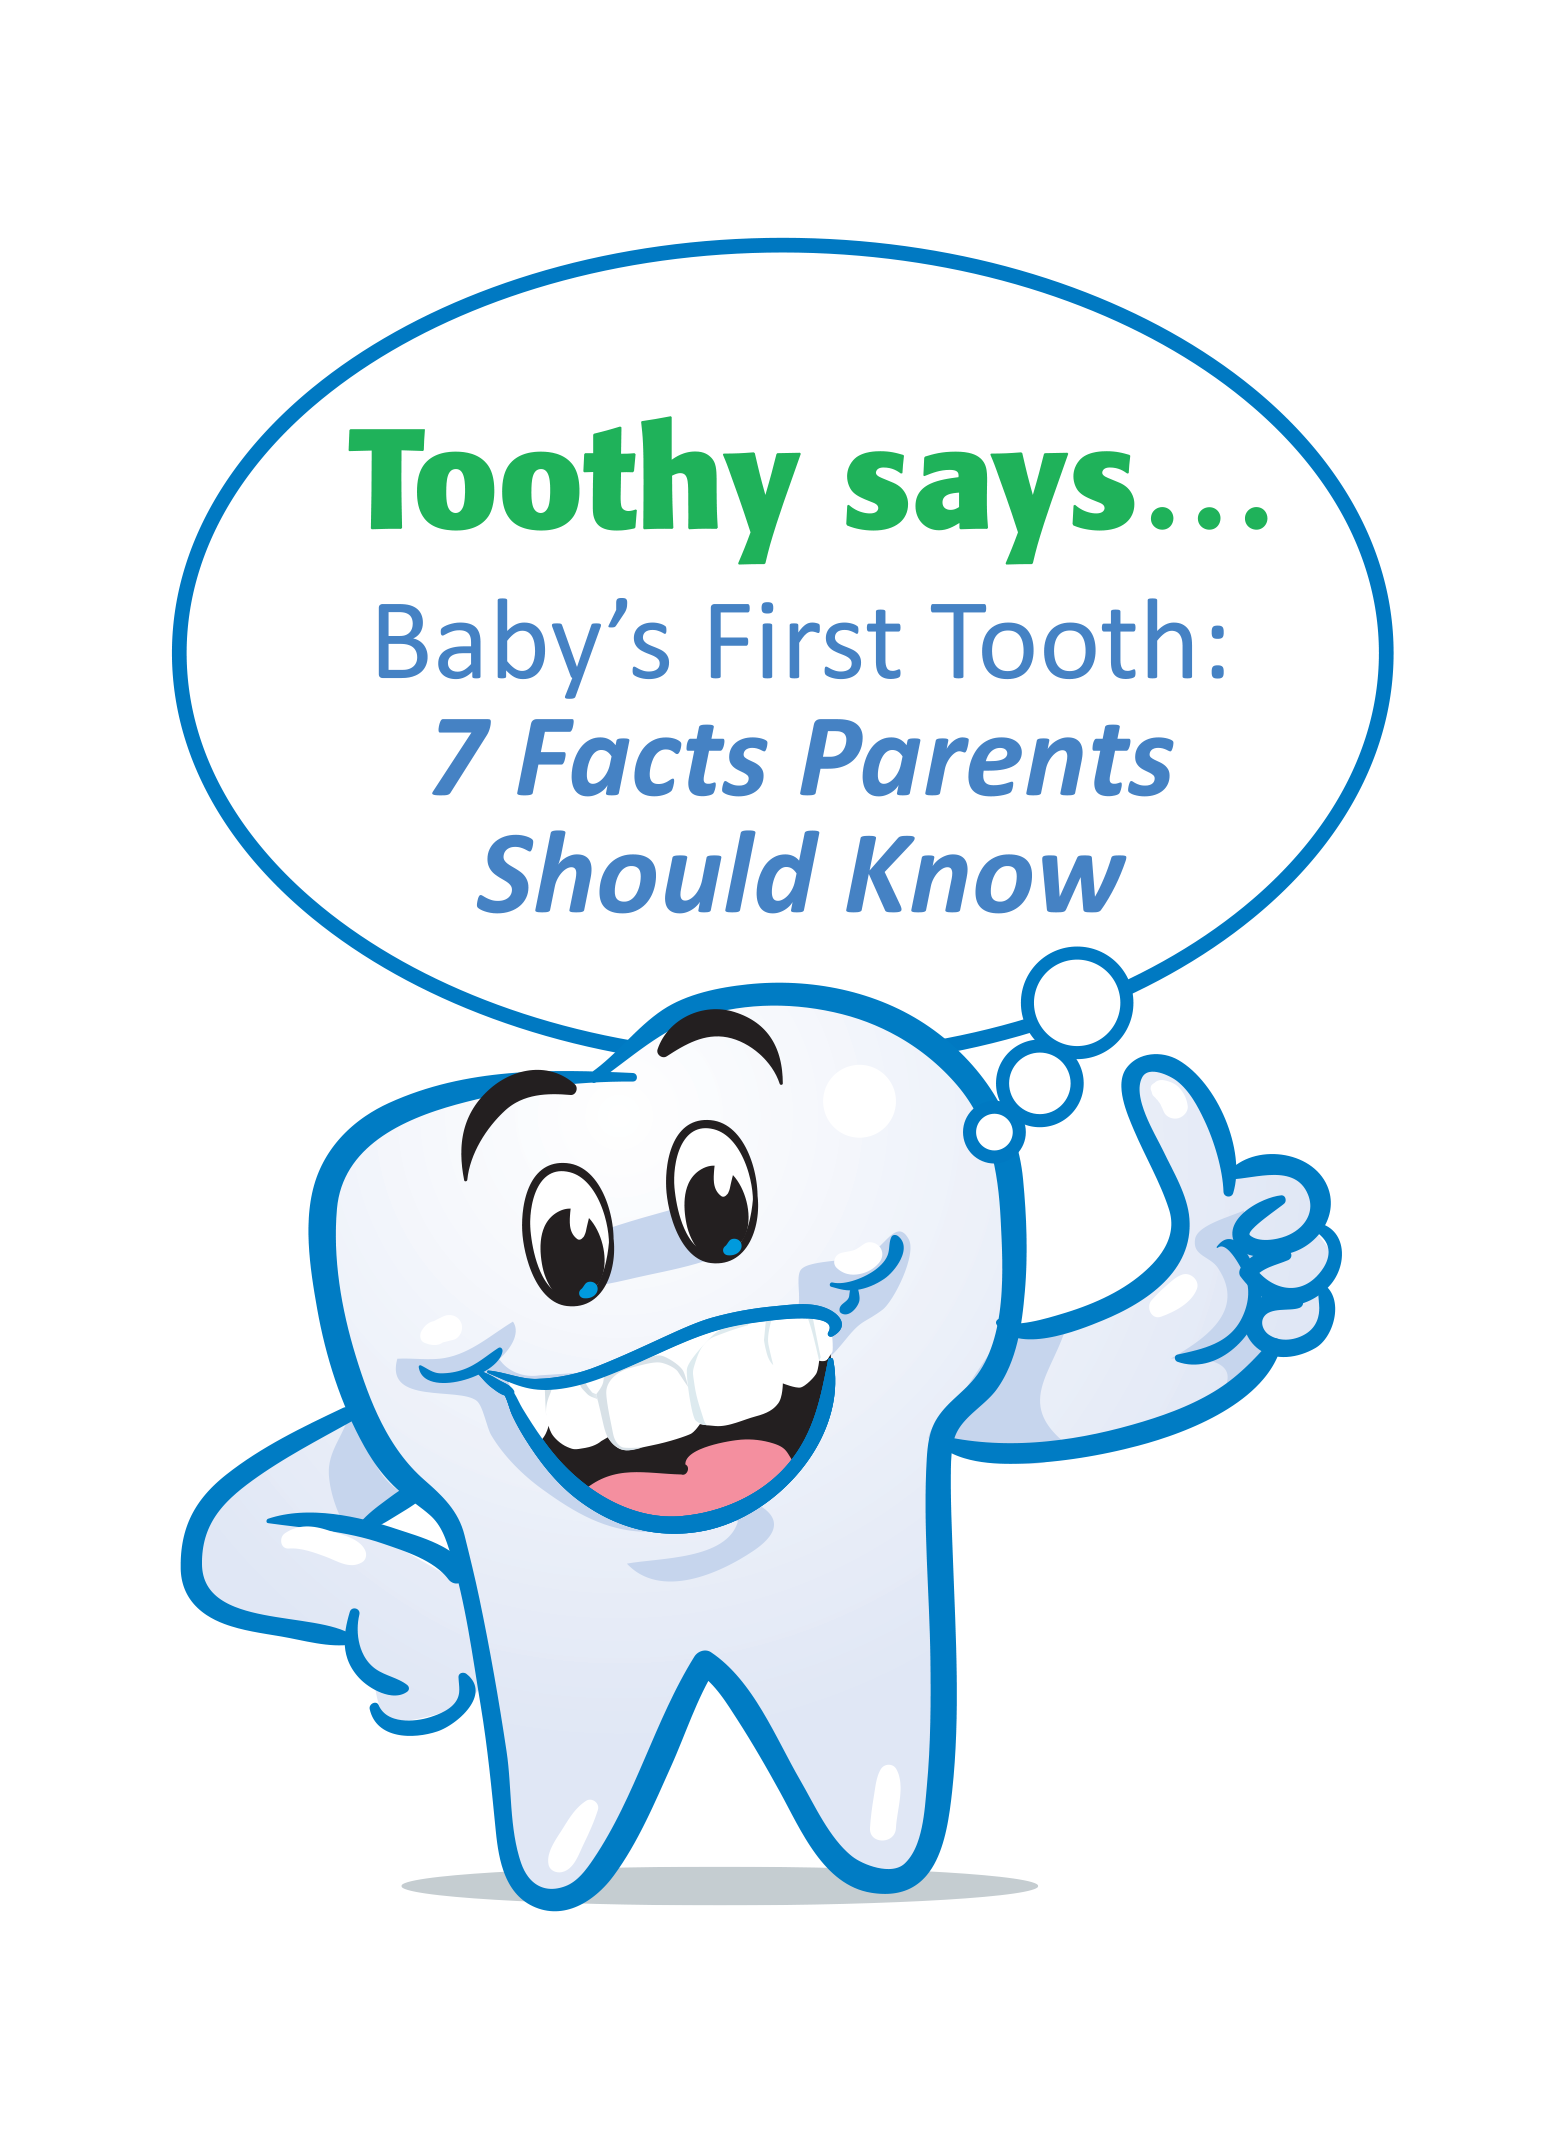 Baby's First Tooth: 7 Facts Parents Should Know